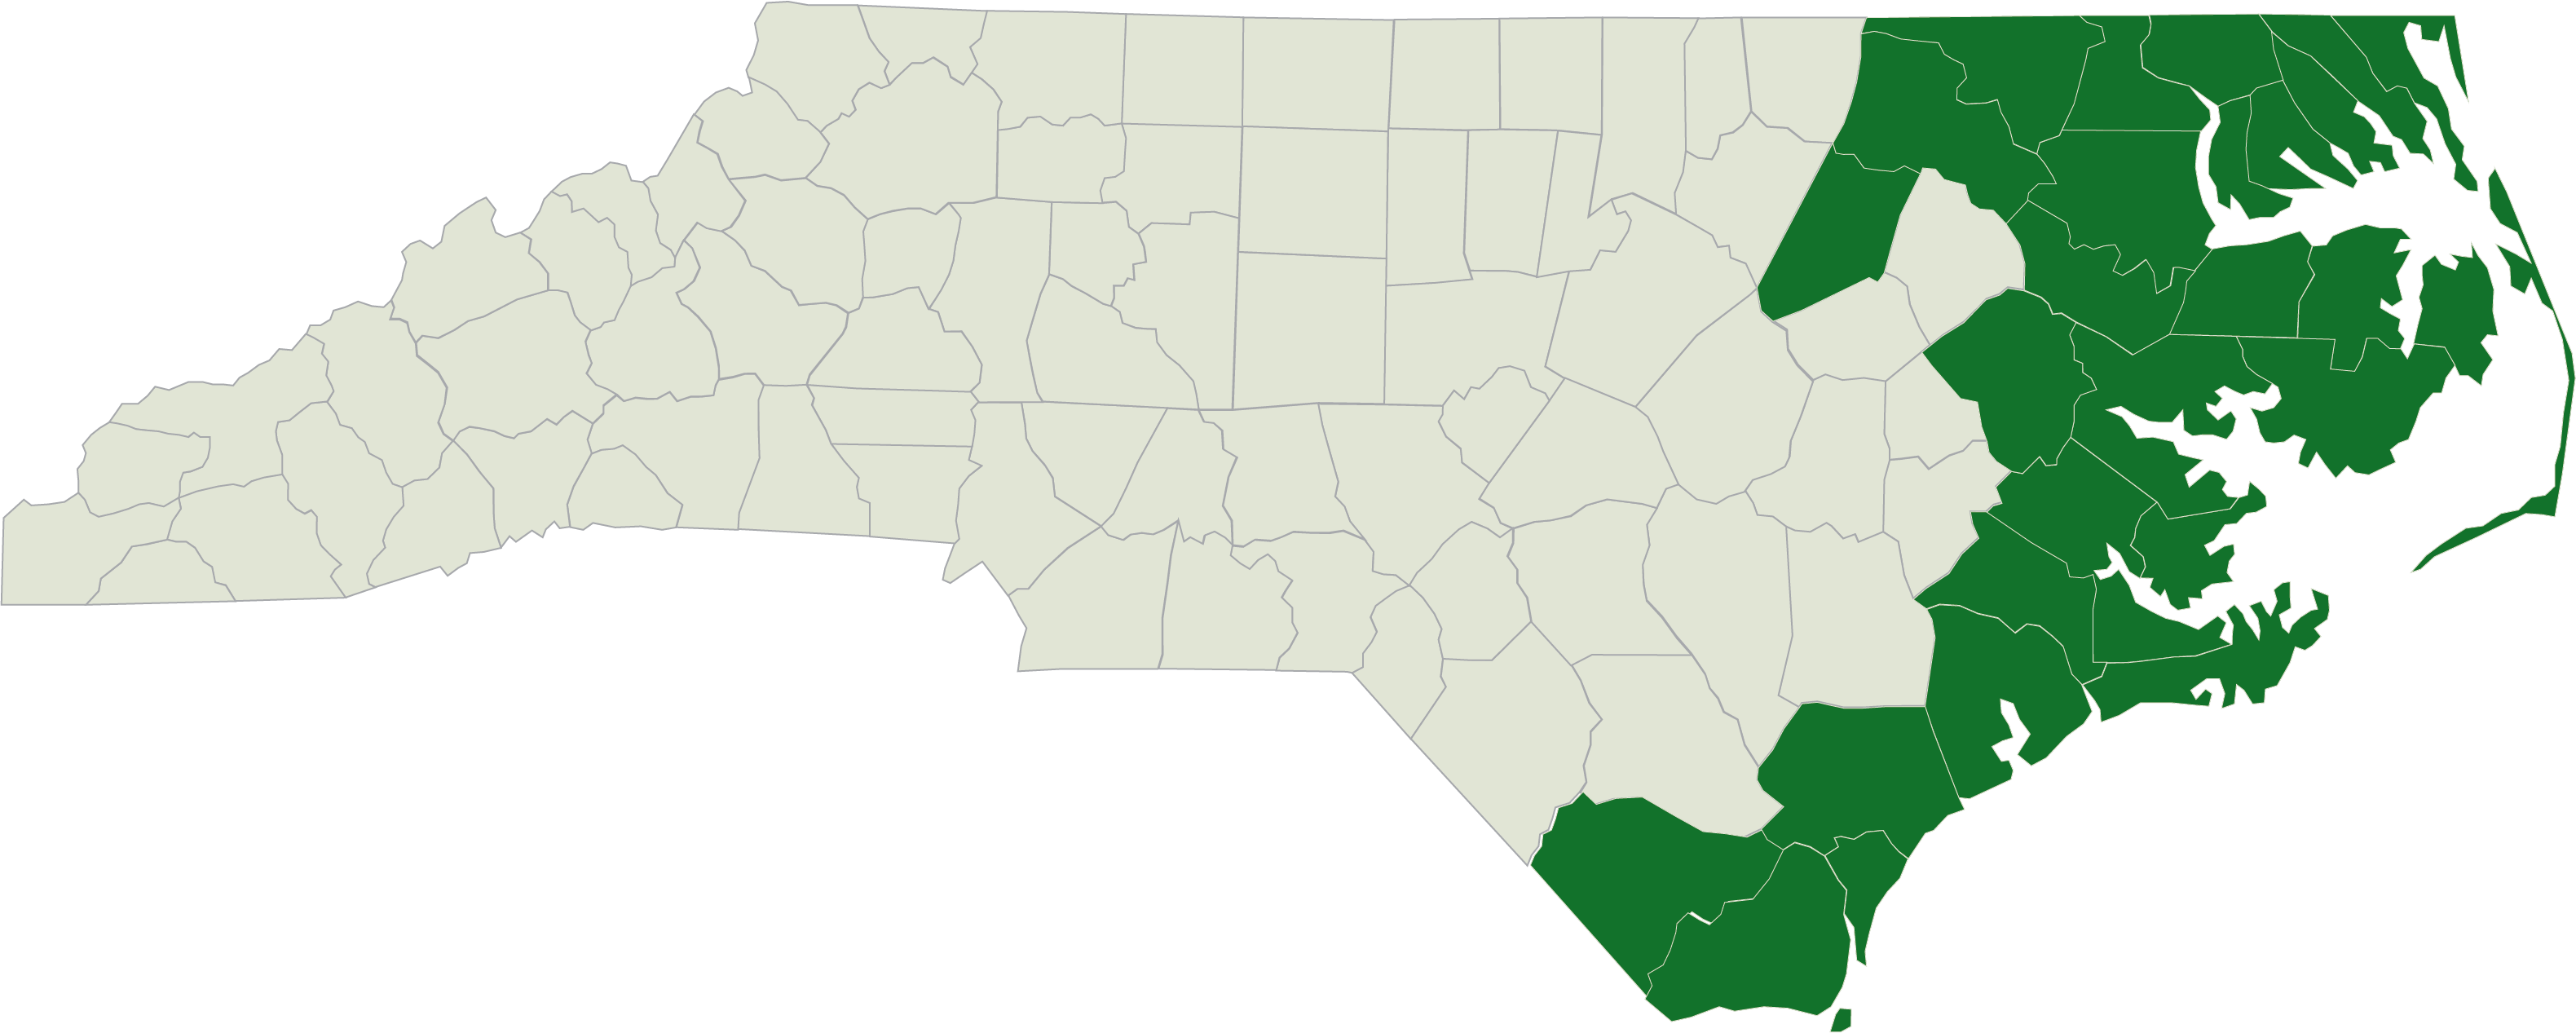 NC map with Trillium Catchment Area in green color